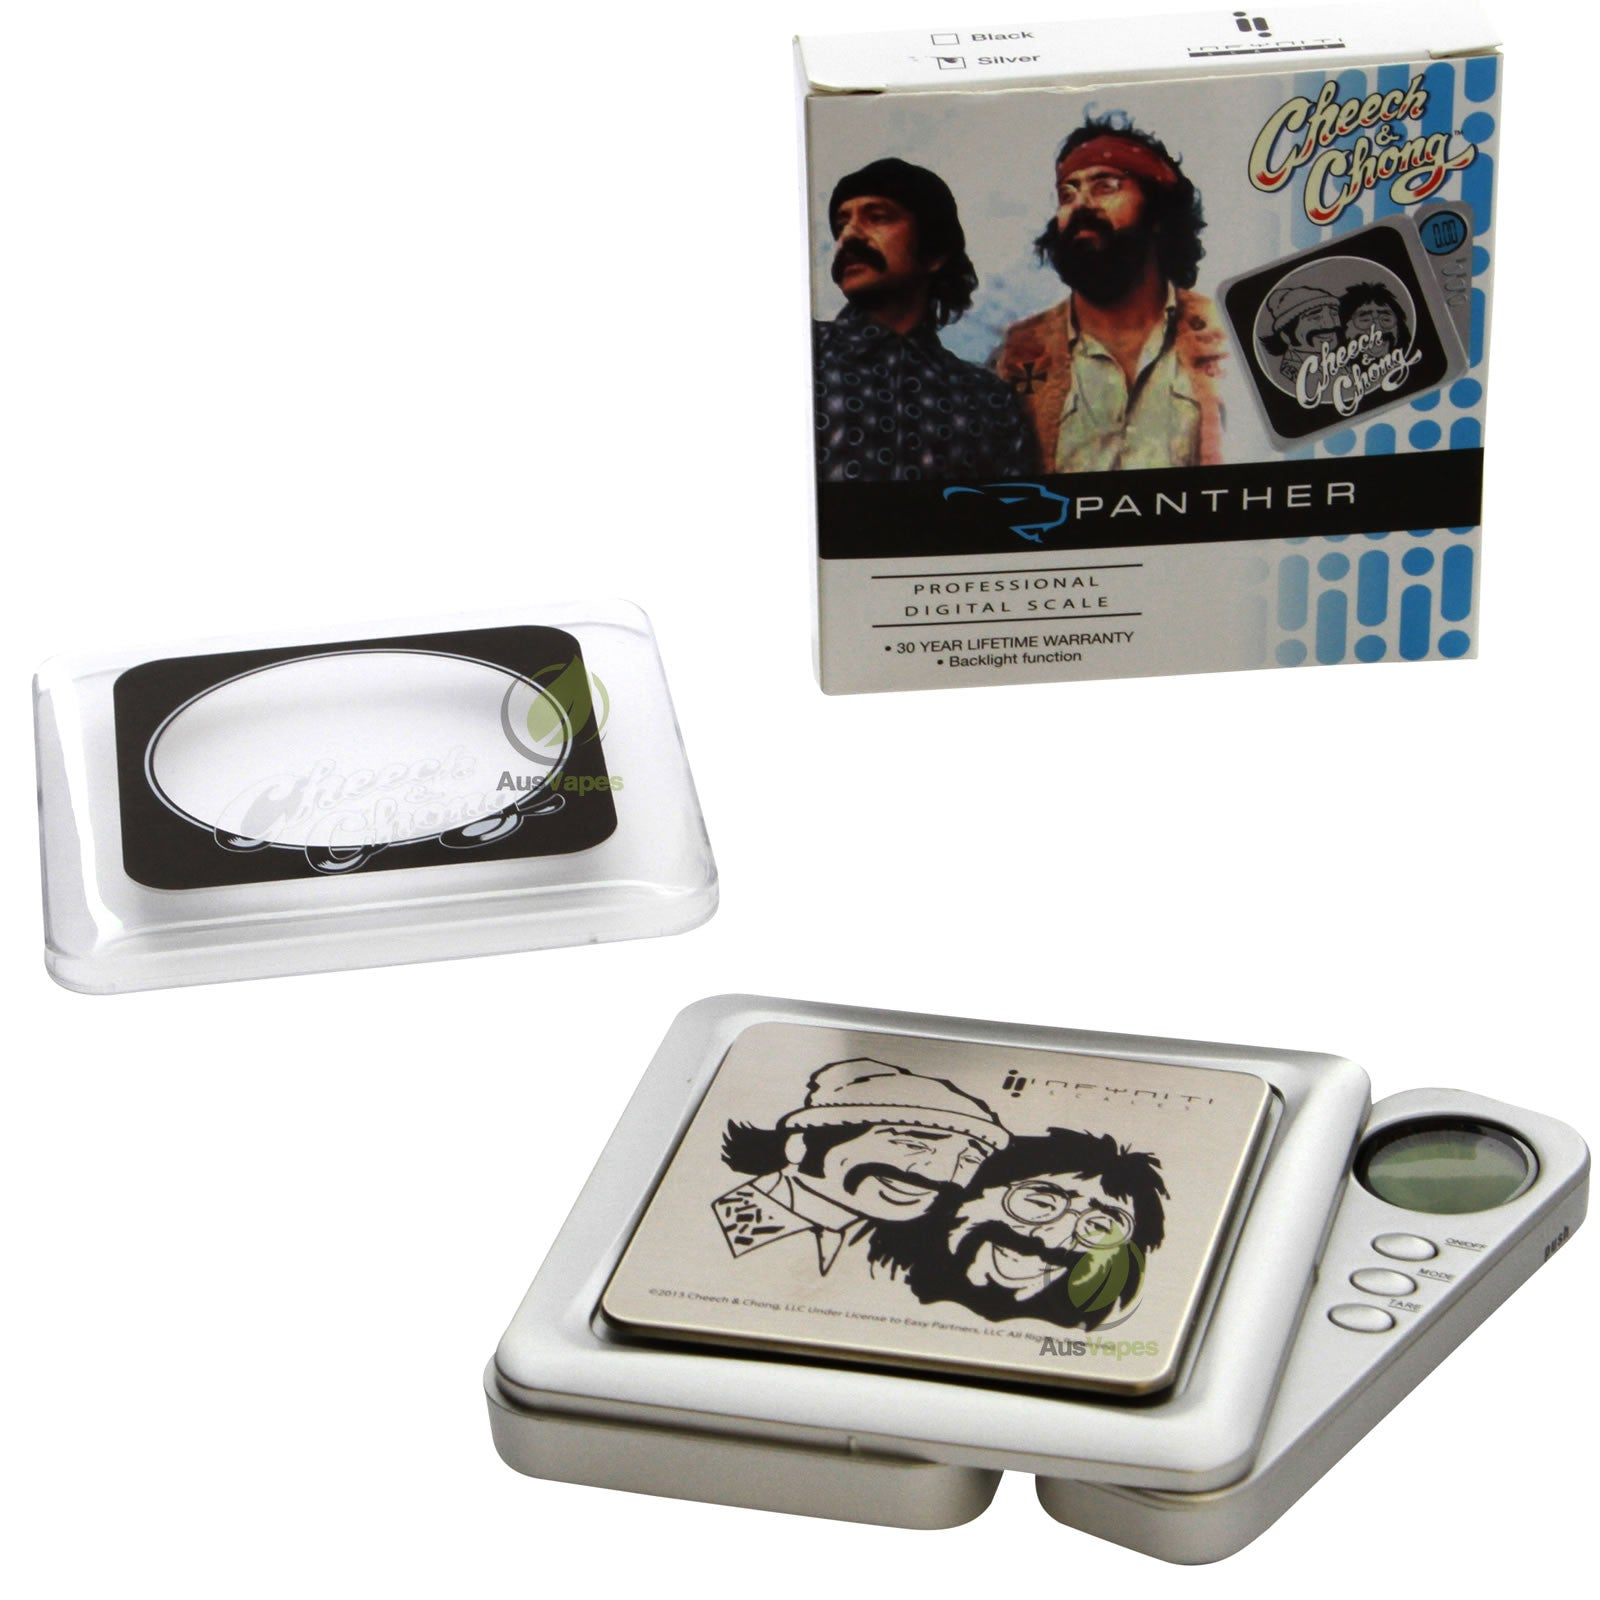 DISCONTINUED Infyniti Cheech & Chong Panther Digital Pocket Scale 50g x 0.01g